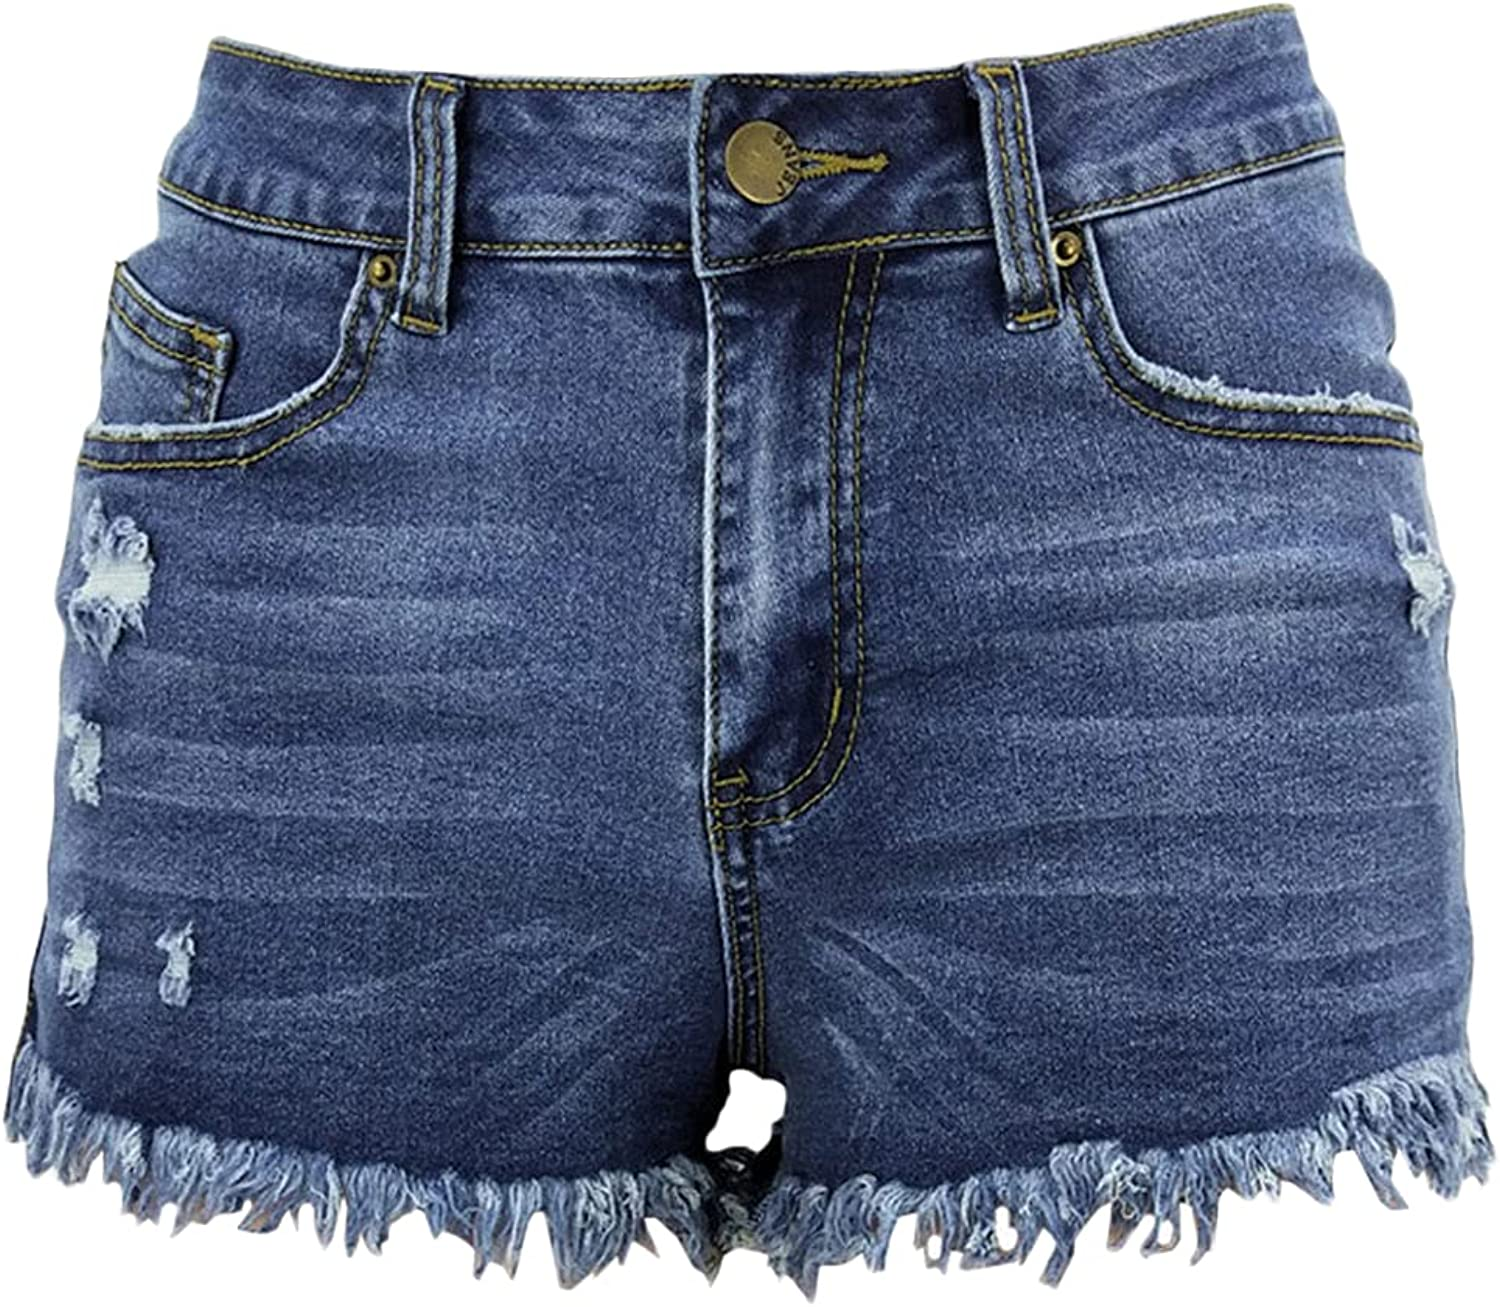 Women's Ripped Fringed Casual Denim Shorts Distressed High Waisted Stretchy Jean Short-pant Fashion Raw Hem Jeans Short